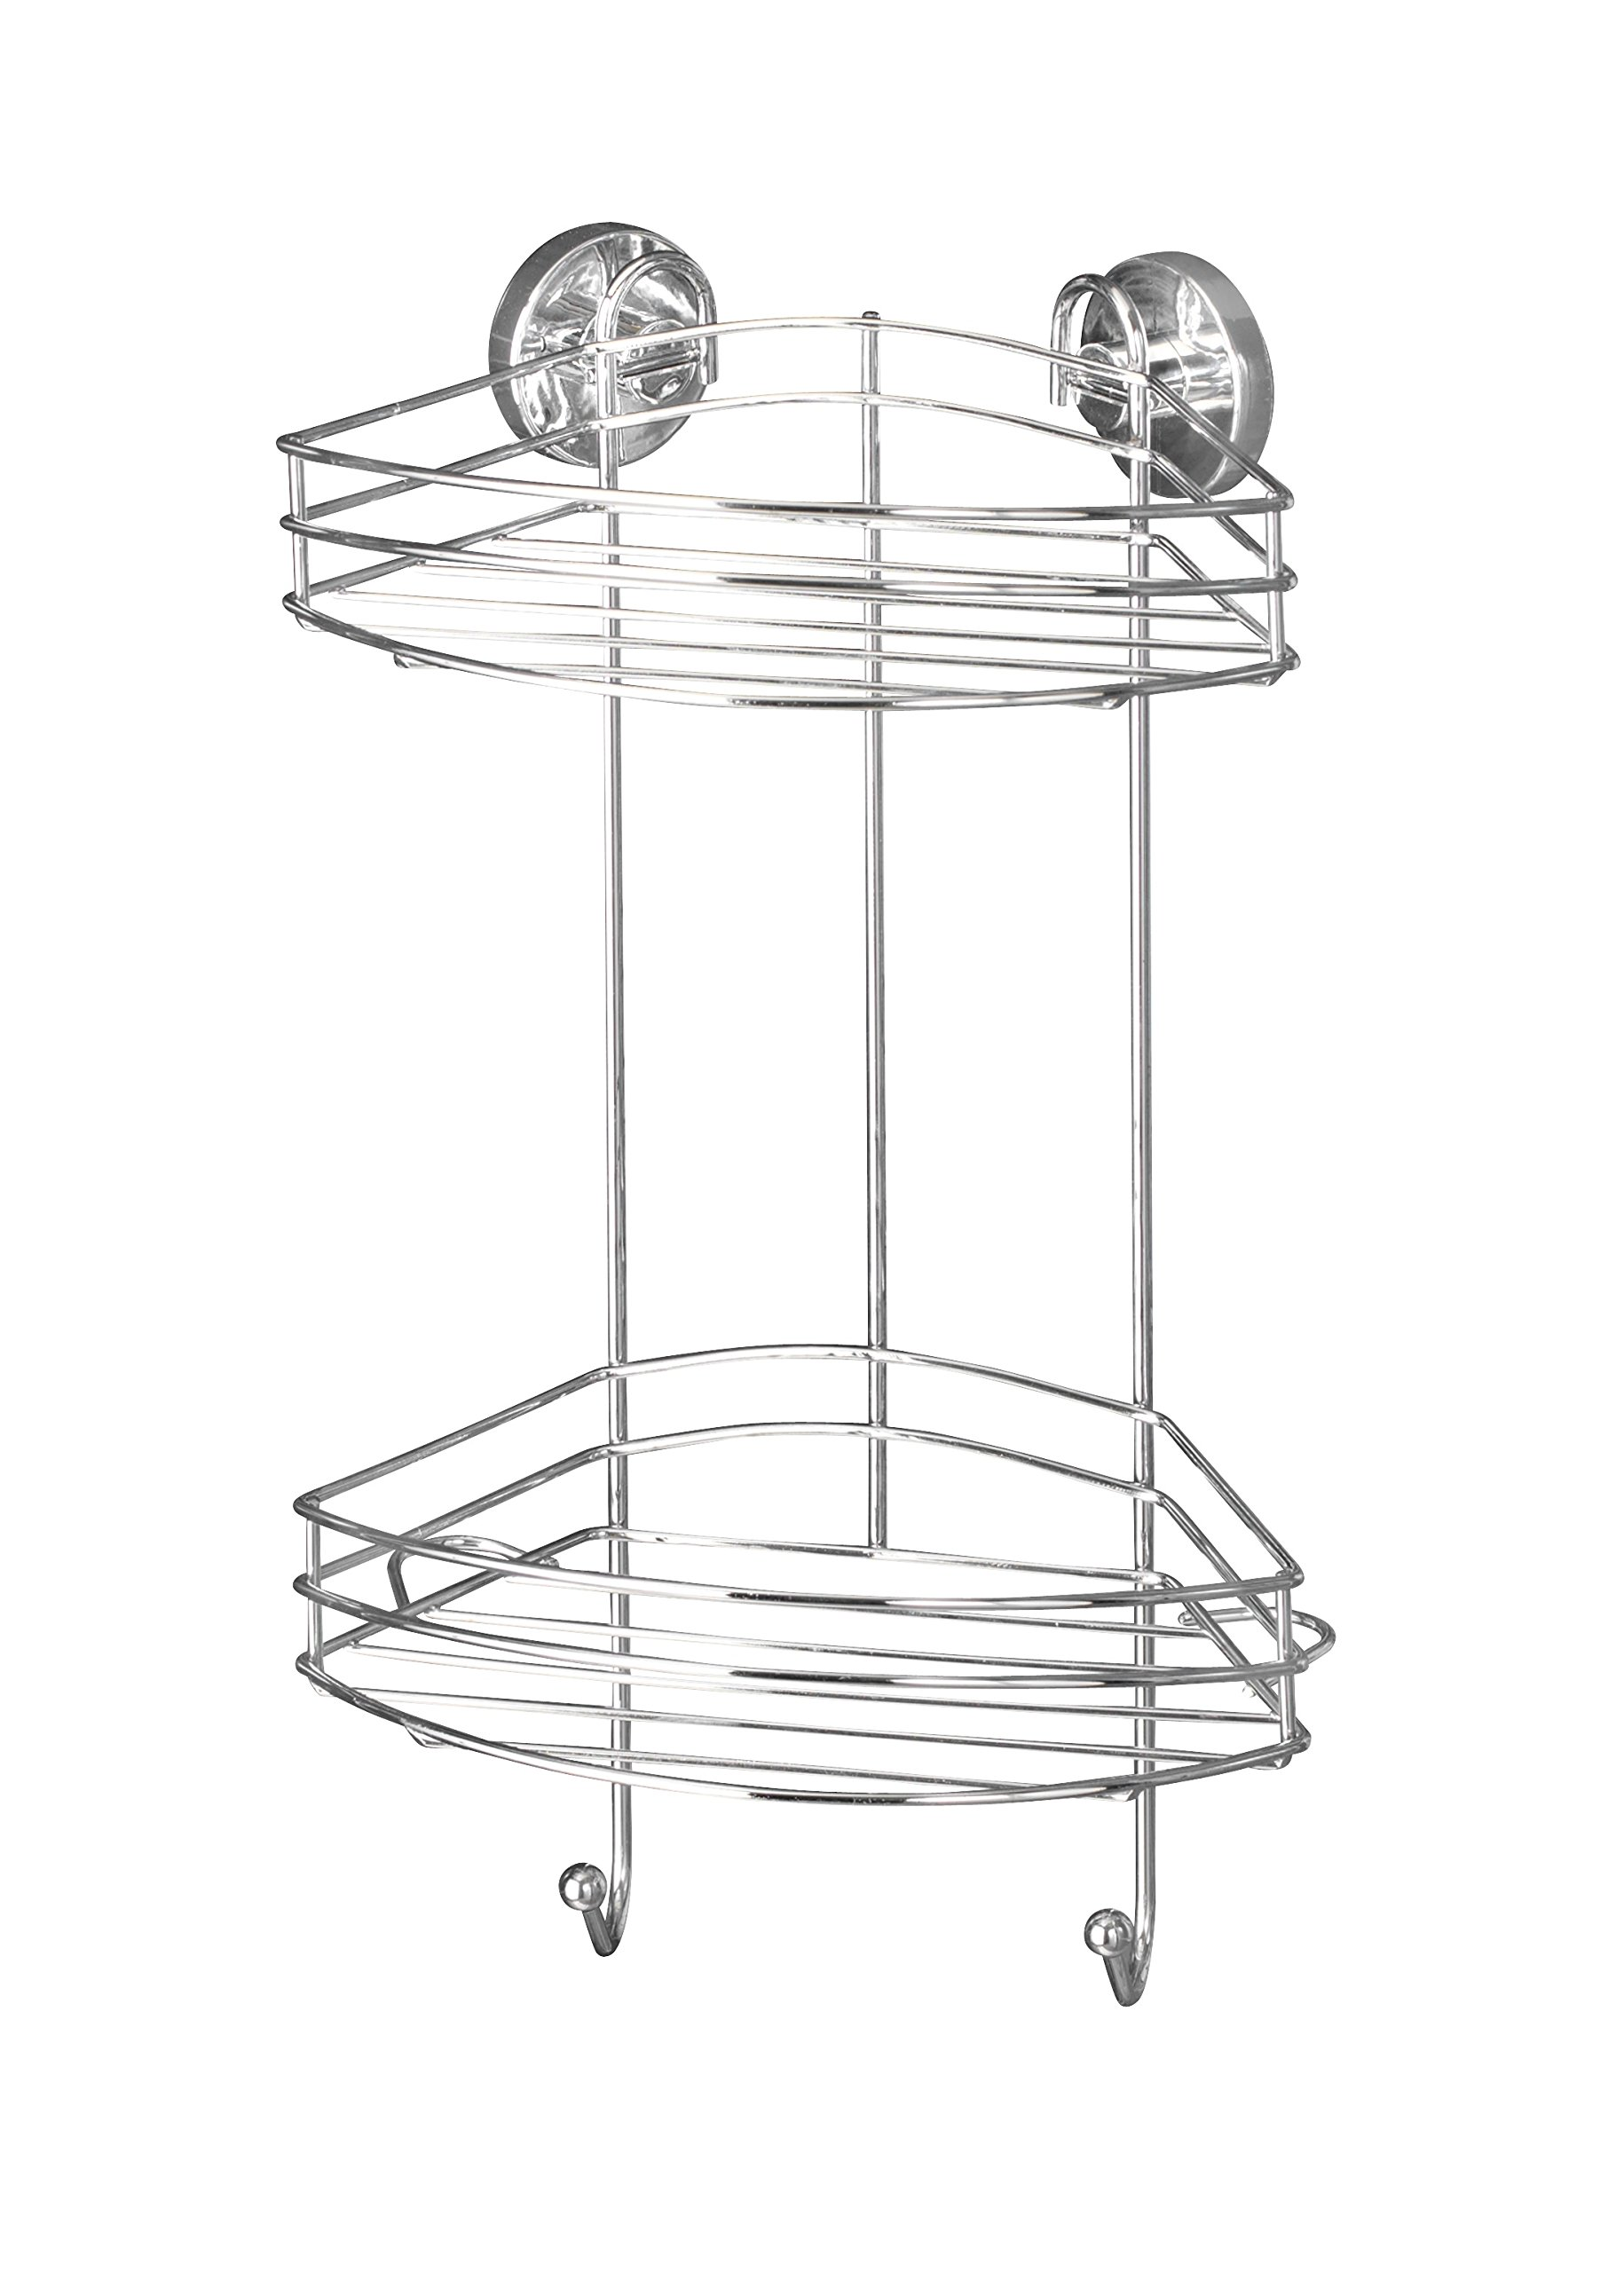 WENKO 20885100 Vacuum-Loc 2-Tier corner rack - fixing without drilling, Steel, 9.1 x 16.9 x 8.3 inch, Chrome